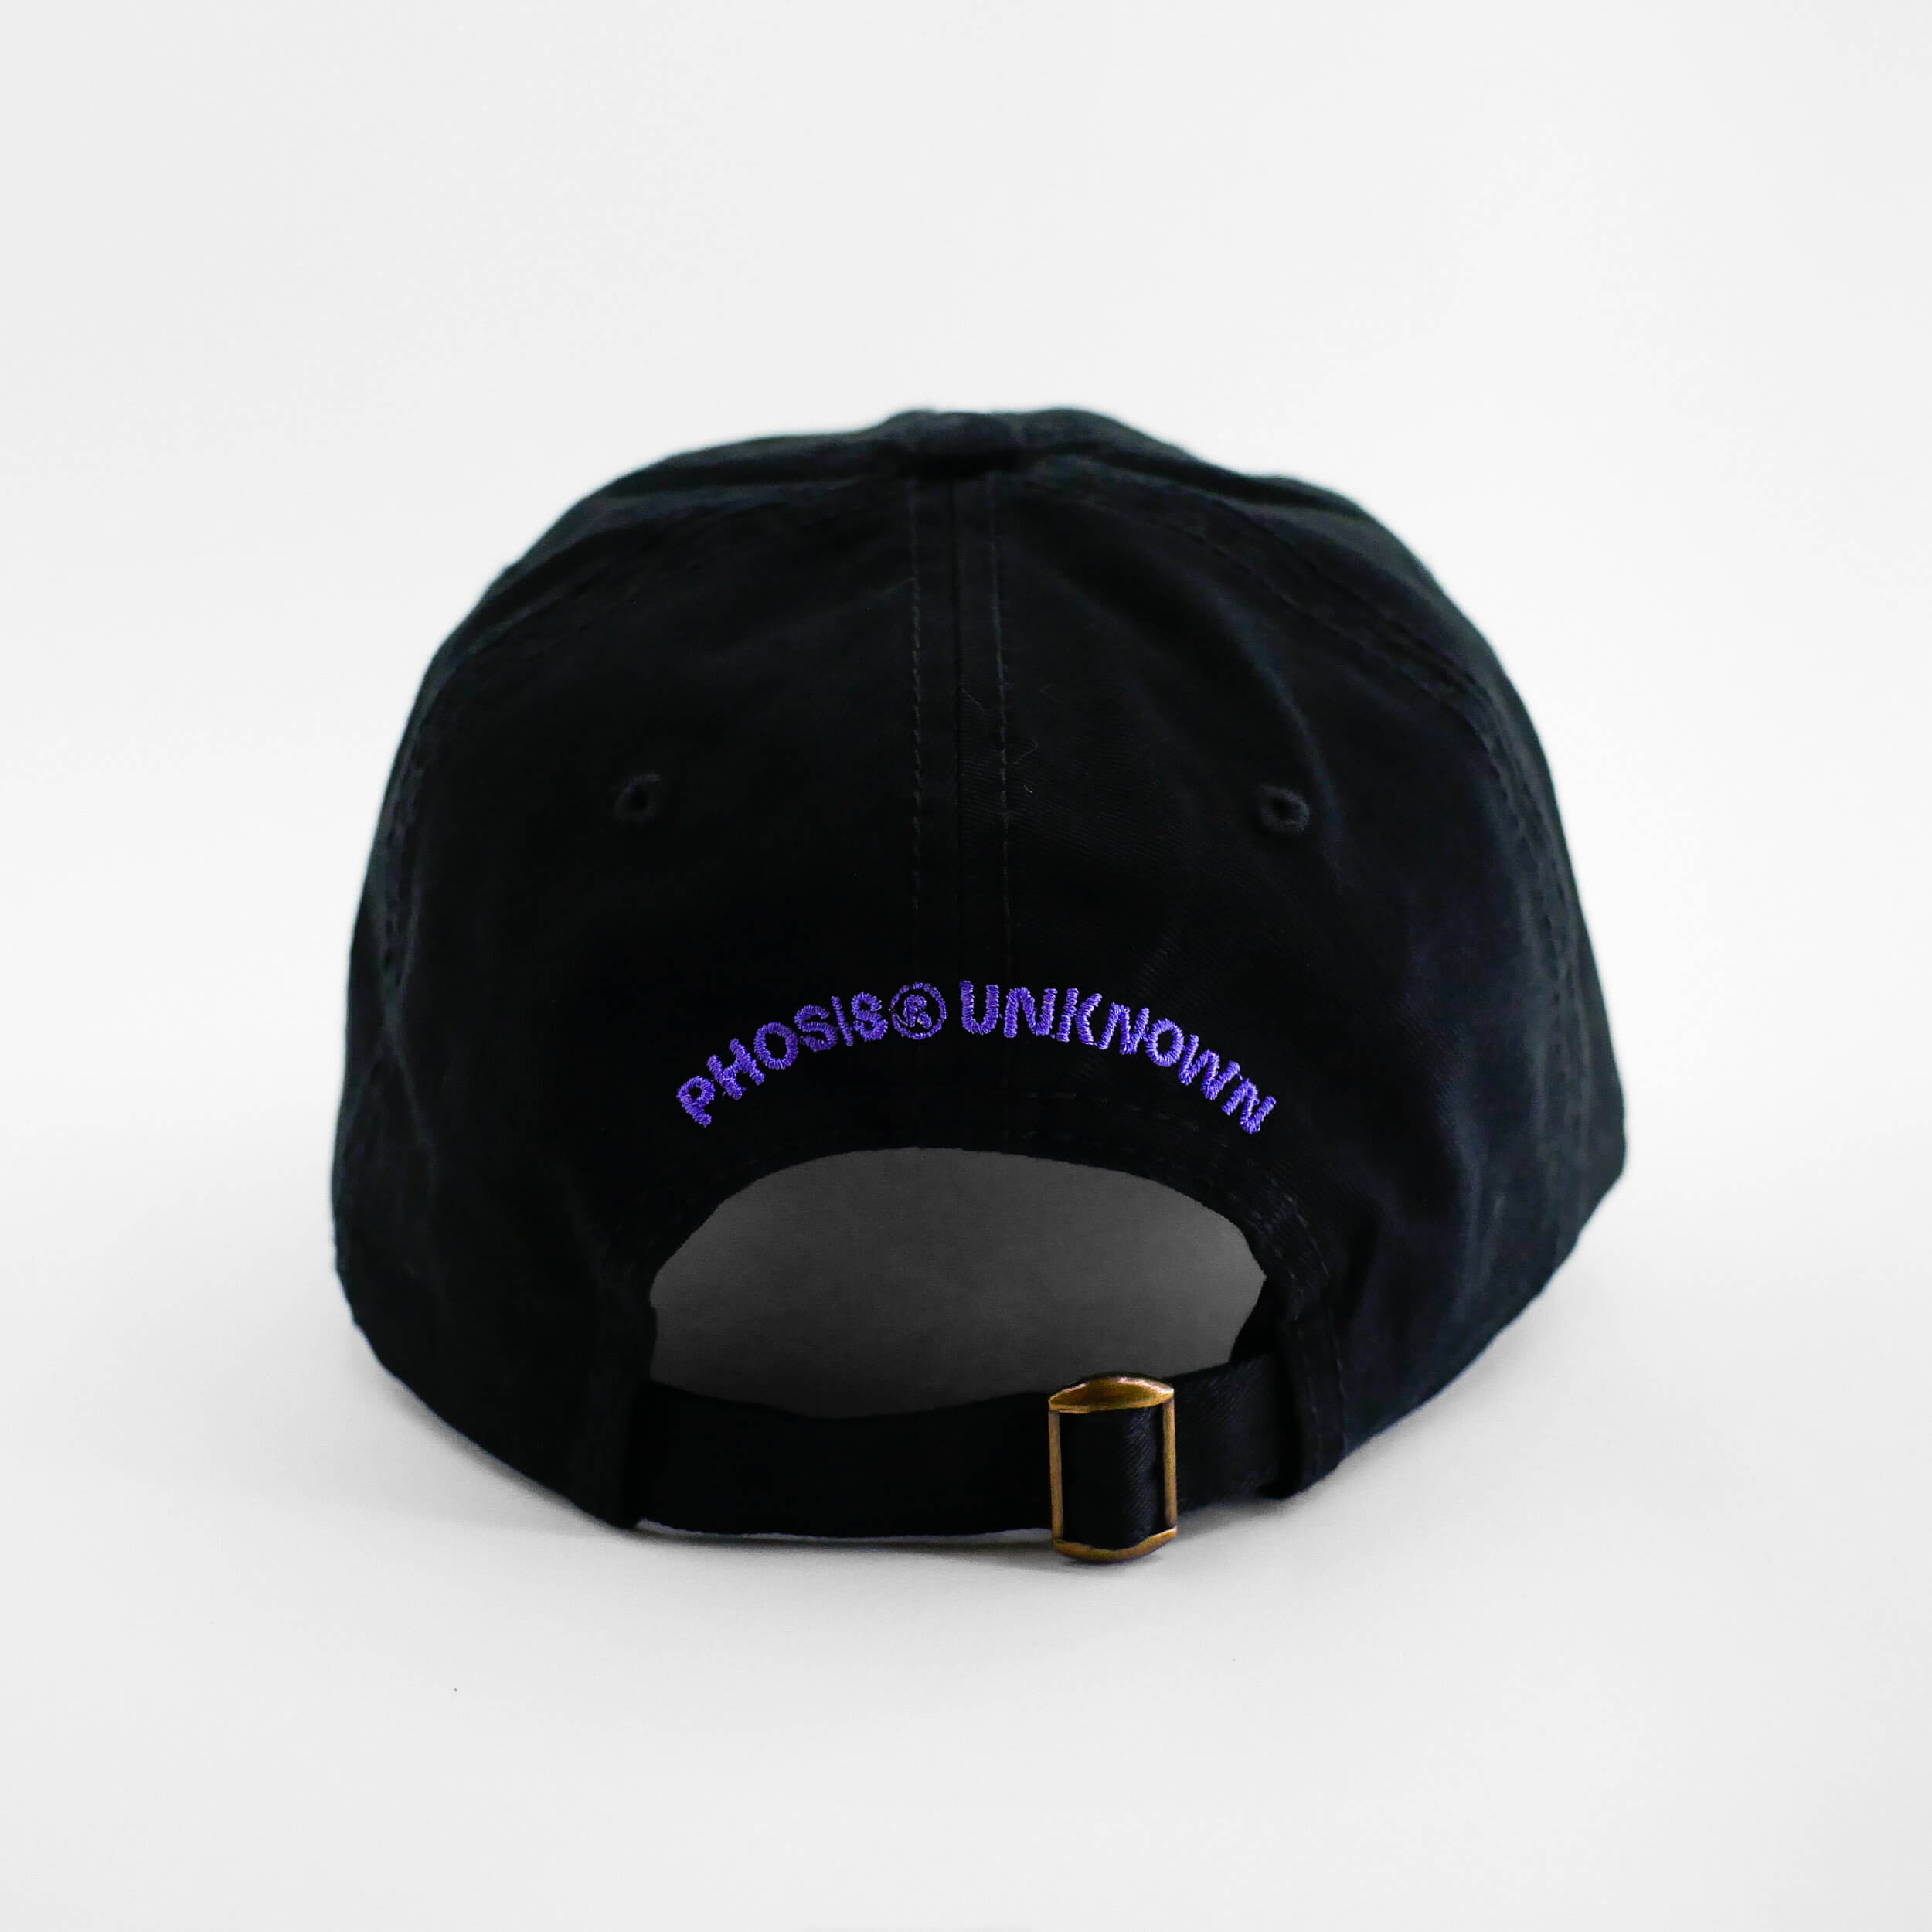 Back view of the embroidered 'FLAMBE' black dad hat from PHOSIS Clothing